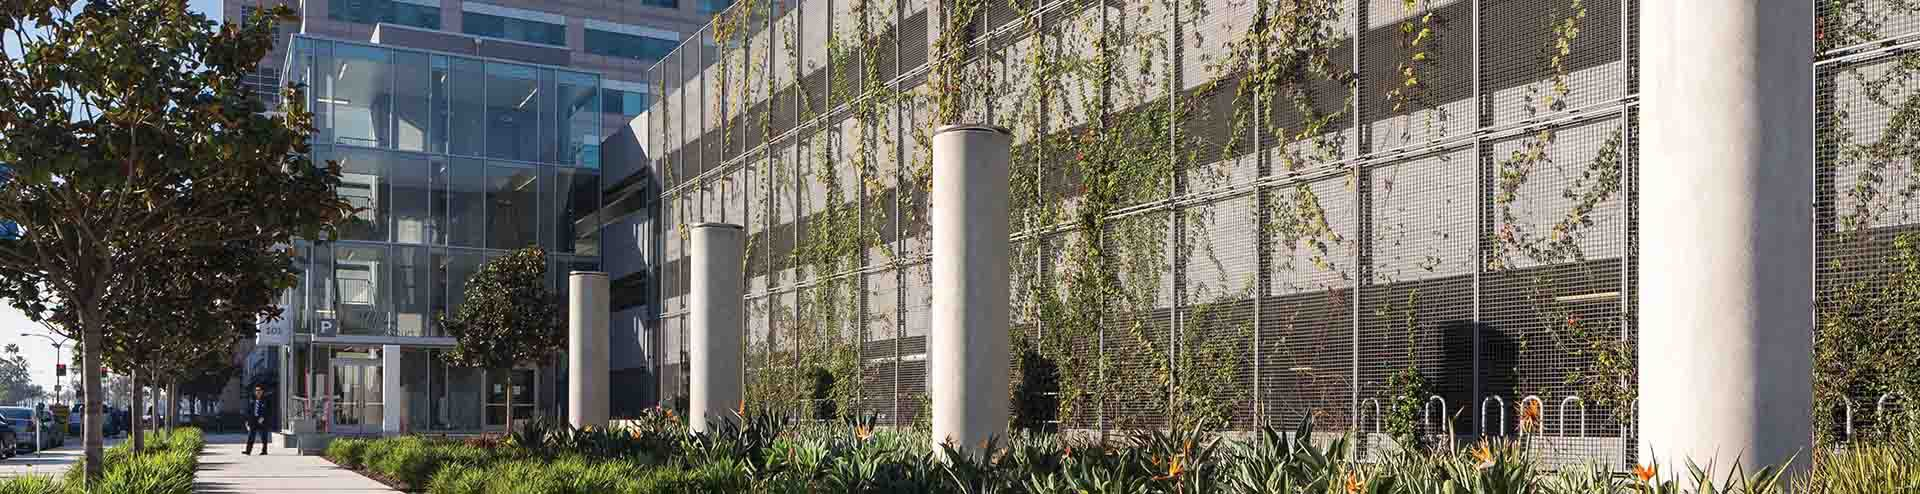 ECO-MESH® - Sustainable Facades, Green Walls & More | McNICHOLS®